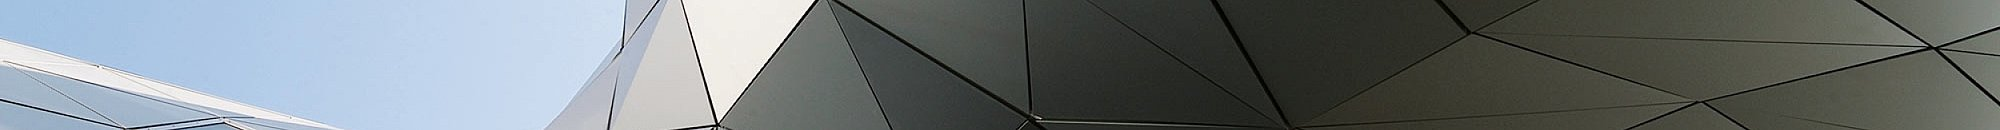 FAÇADE FASCINATION WITH THE ORIGINAL ALUMINIUM COMPOSITE MATERIAL